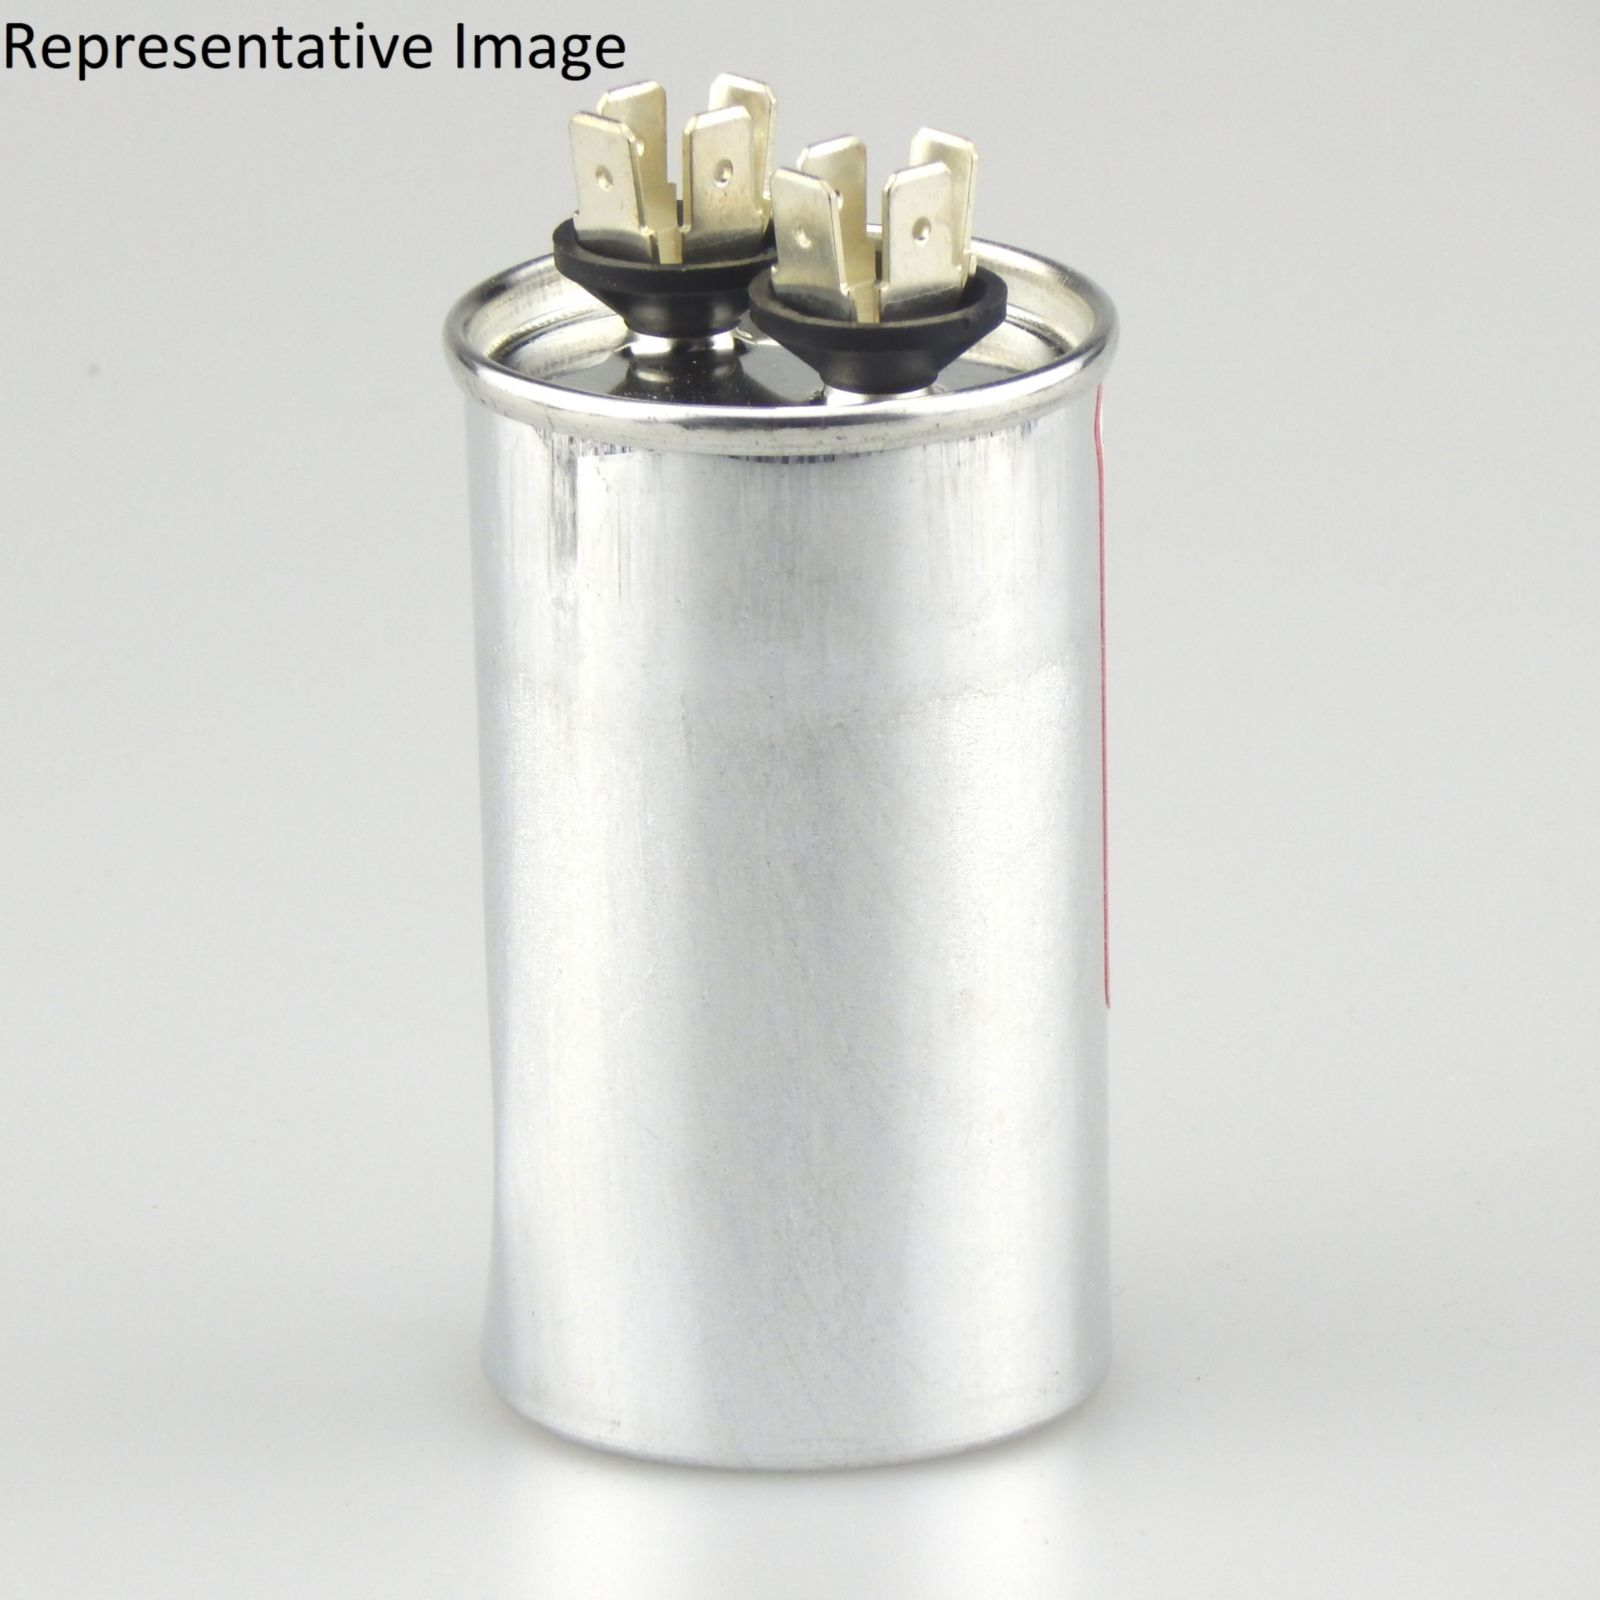 Amrad USA2207 - 10/370/440V Round Capacitor - USA Made